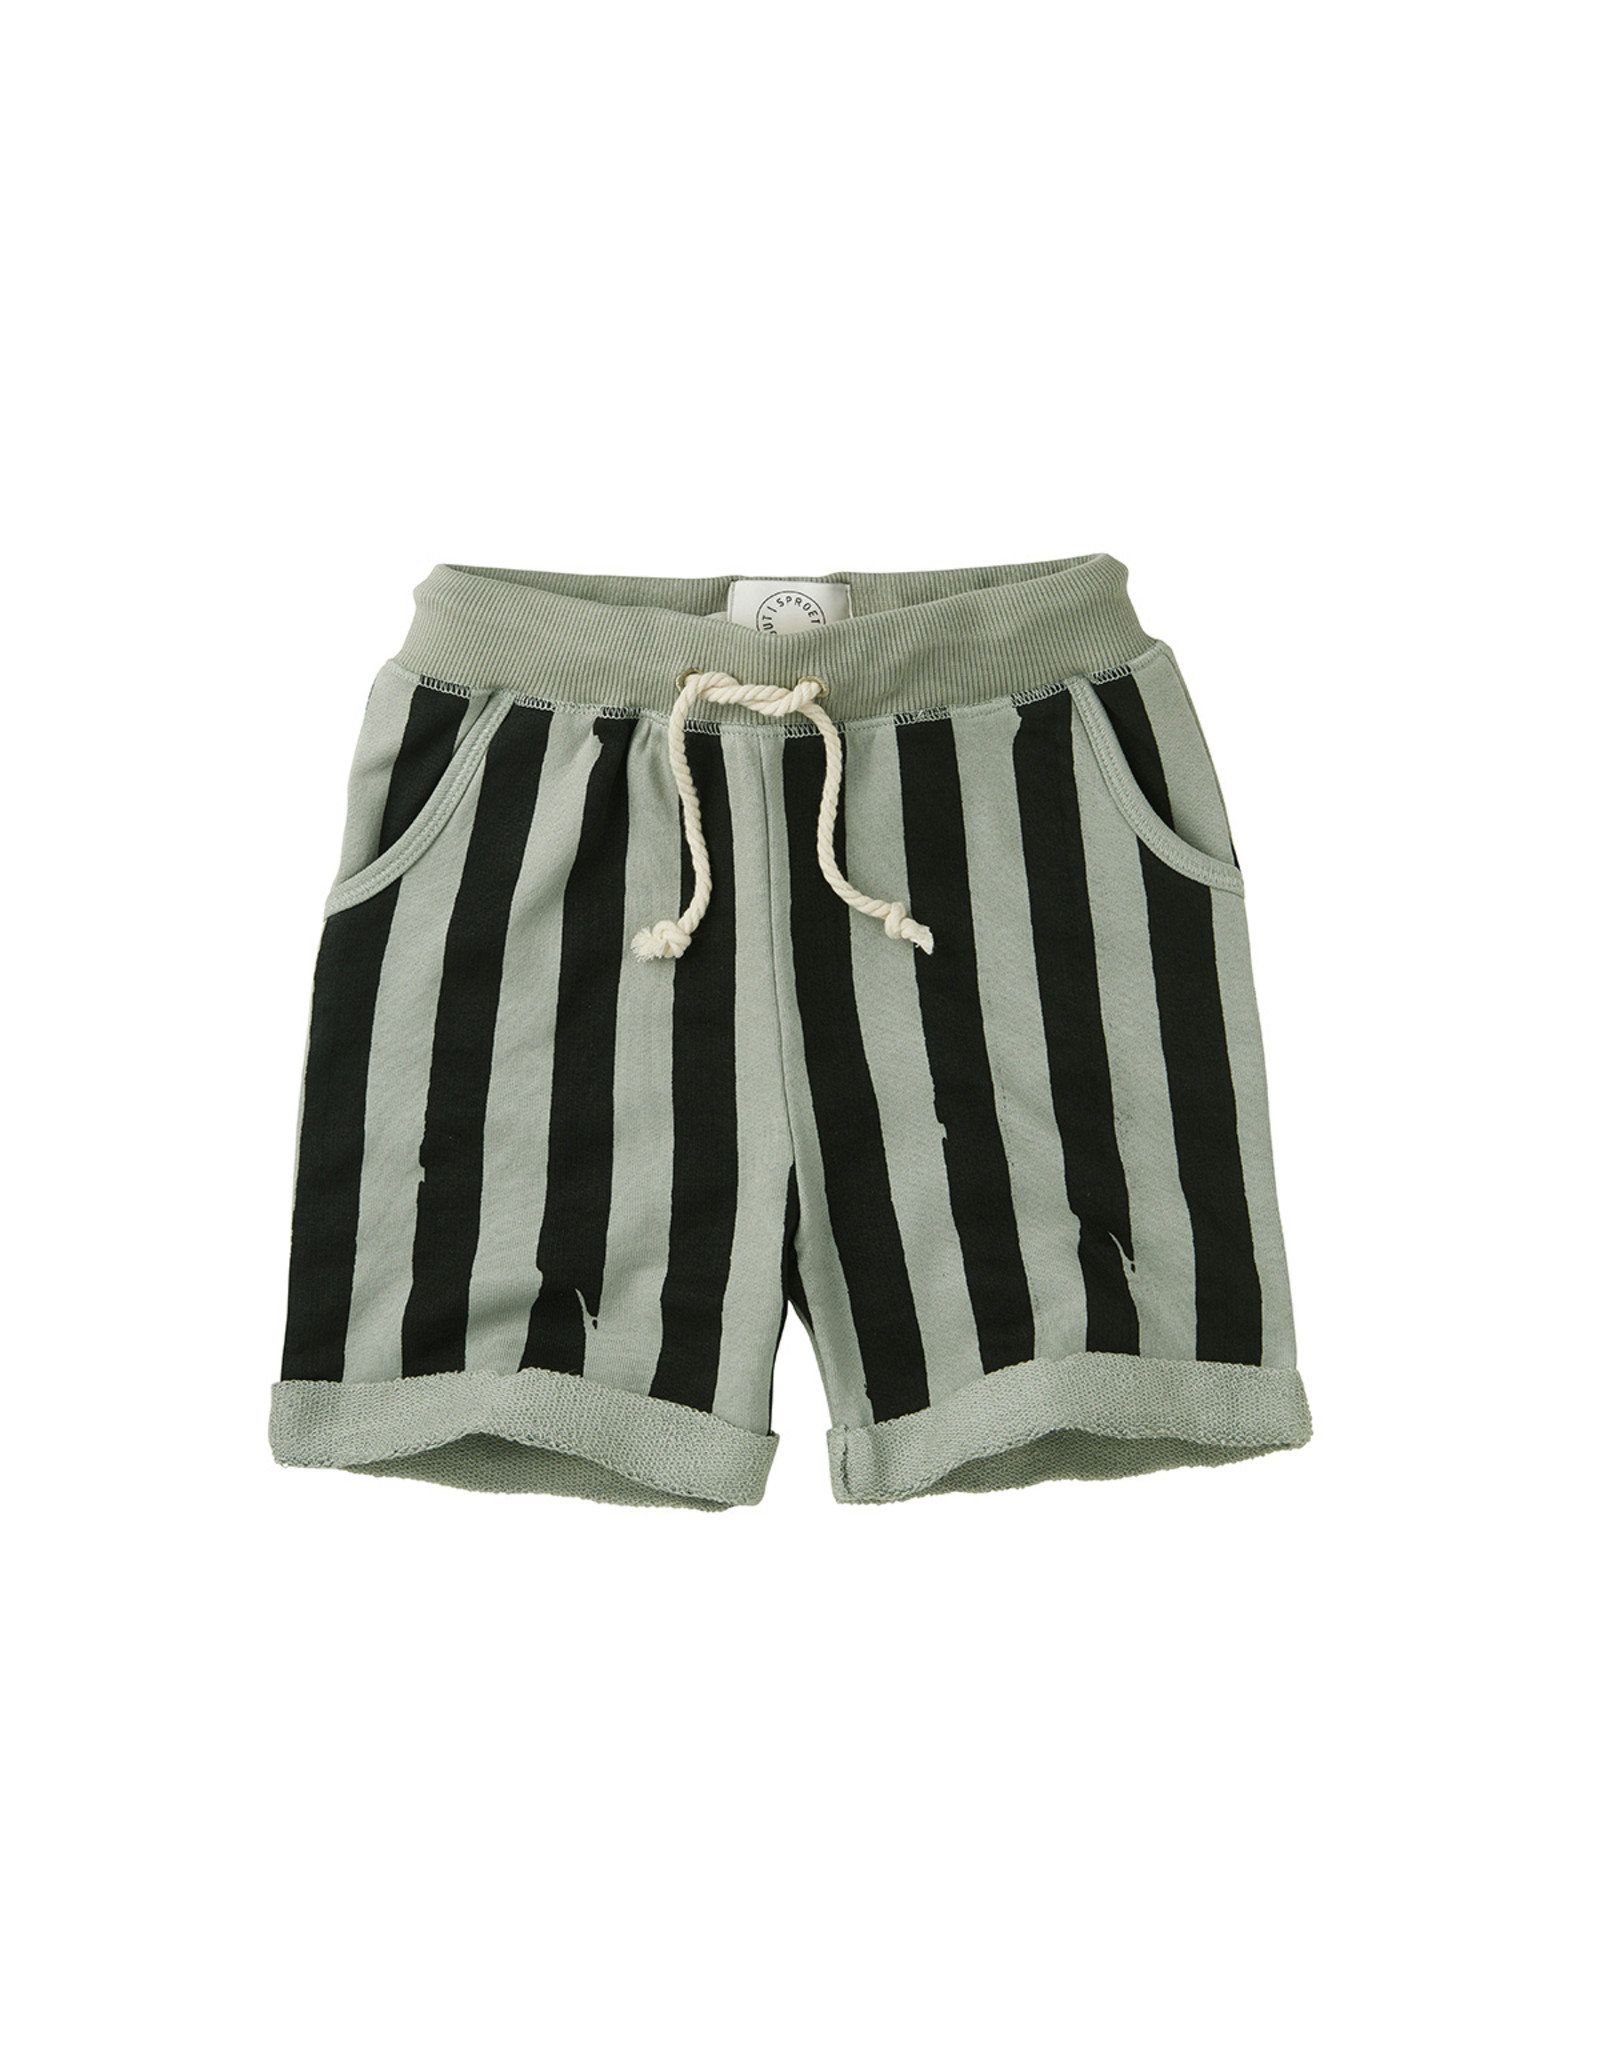 Sproet & Sprout SS - Short Painted Stripe